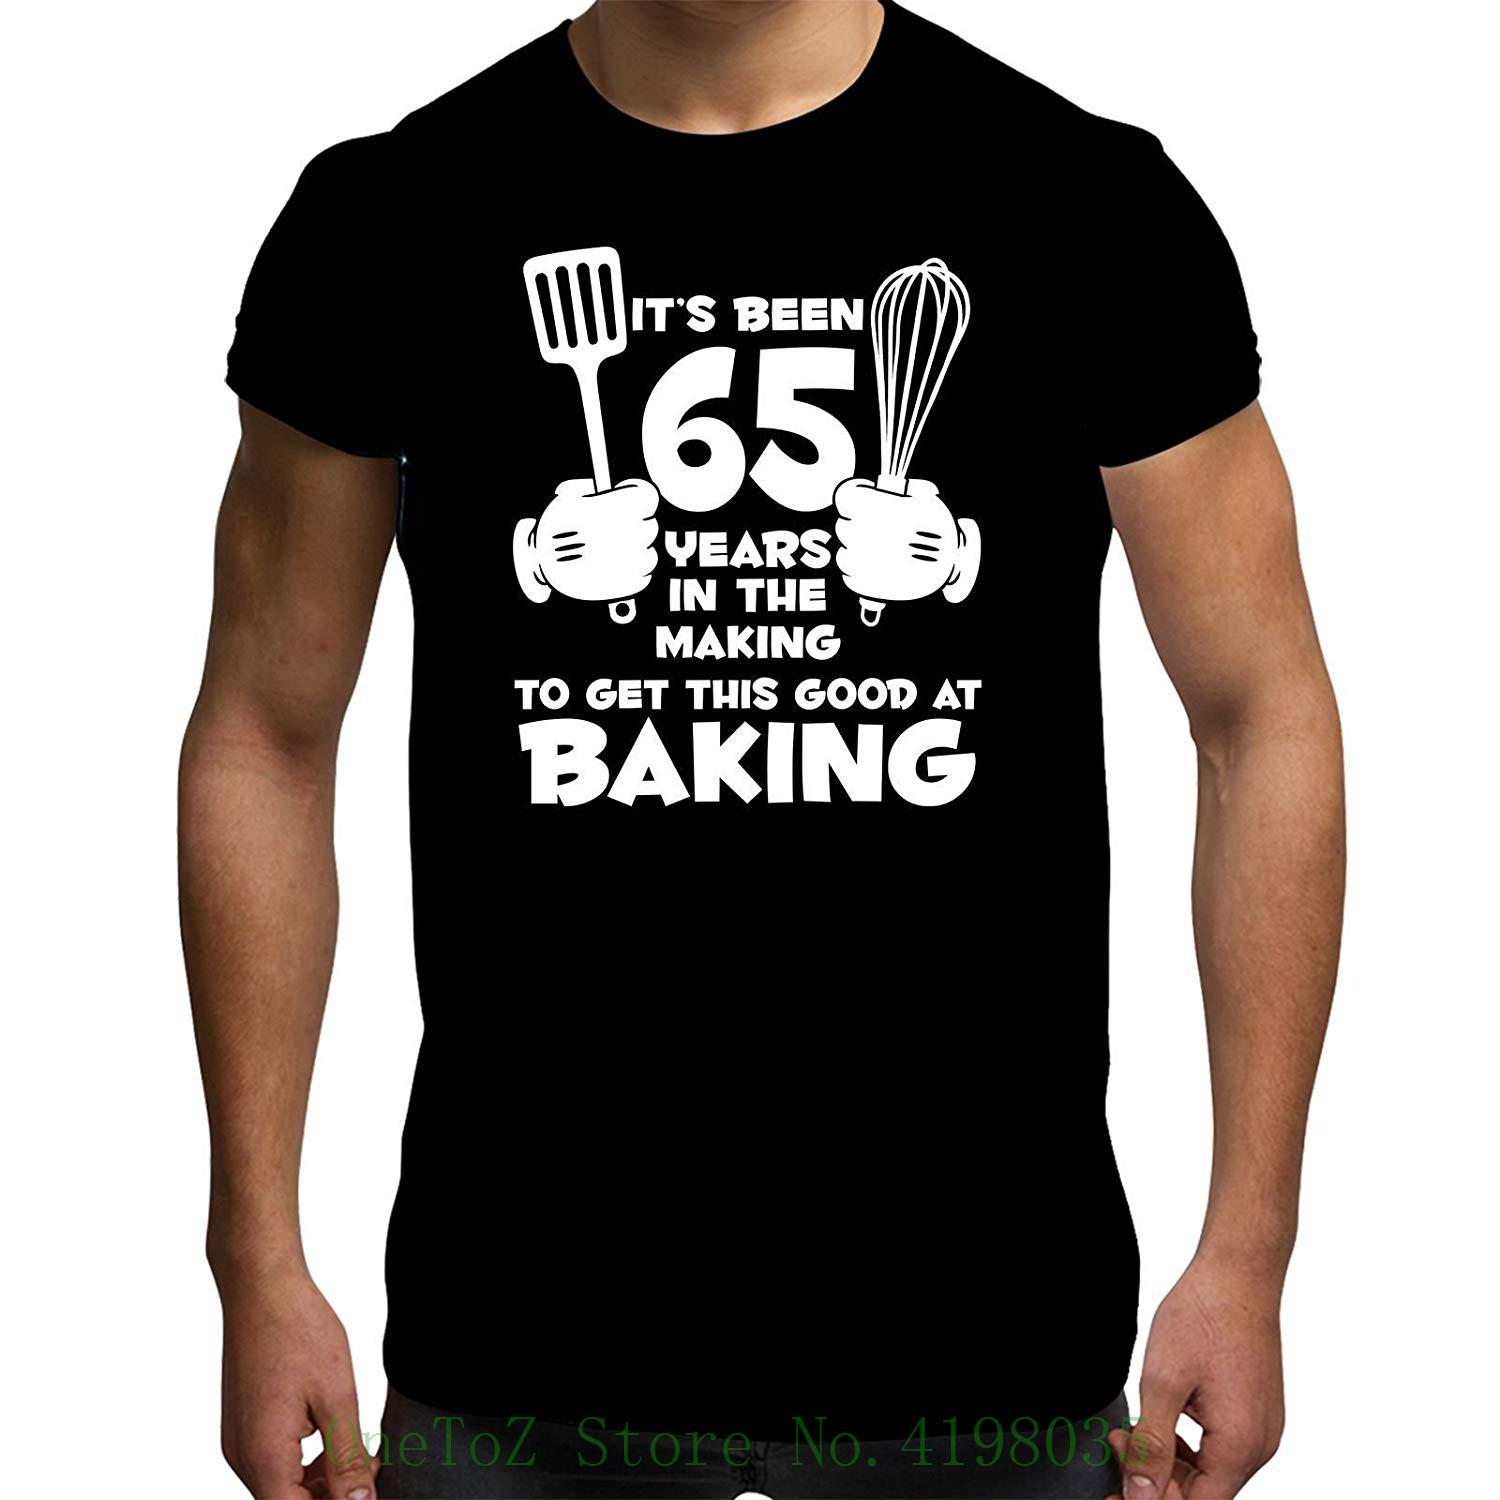 Mens 65th Birthday T Shirt Its Been 65 Years Baking 50th Gifts Printed Men Clothes Crazy Shirts Online Cool Looking From